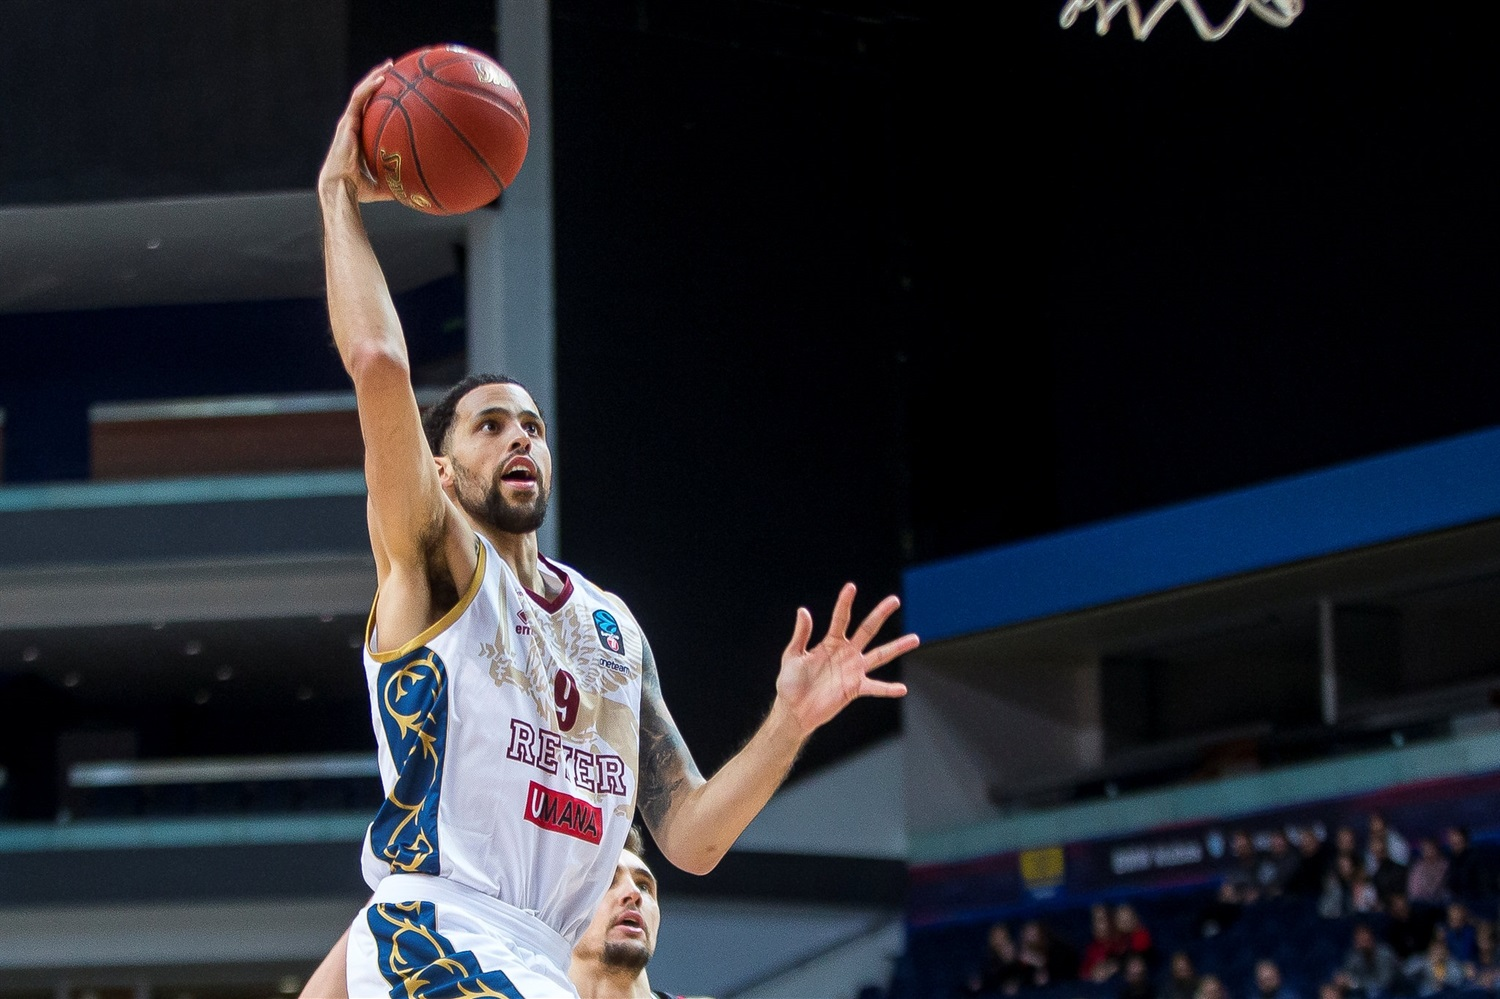 Austin Daye - Umana Reyer Venice (photo Rytas) - EC19